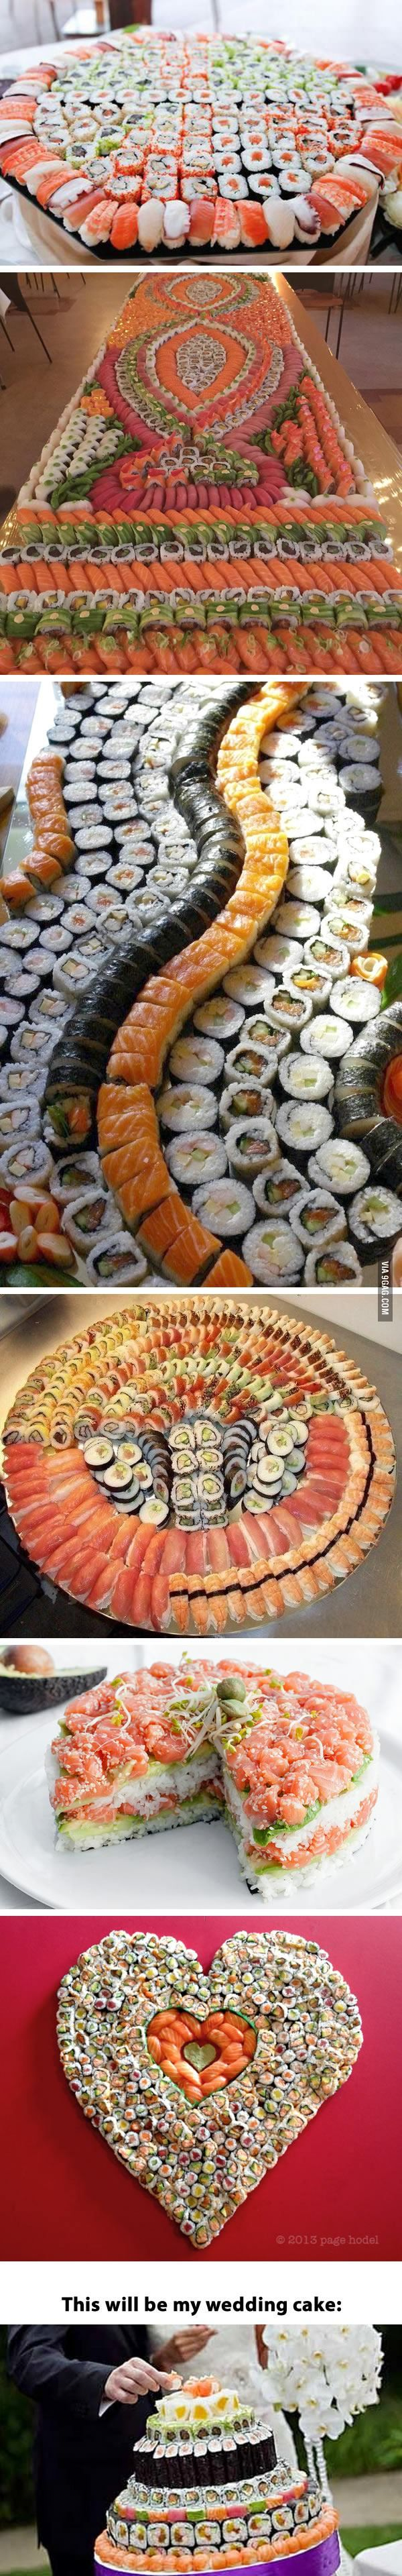 Sushi porn, for the crazy sushi lovers (like me) - 9GAG